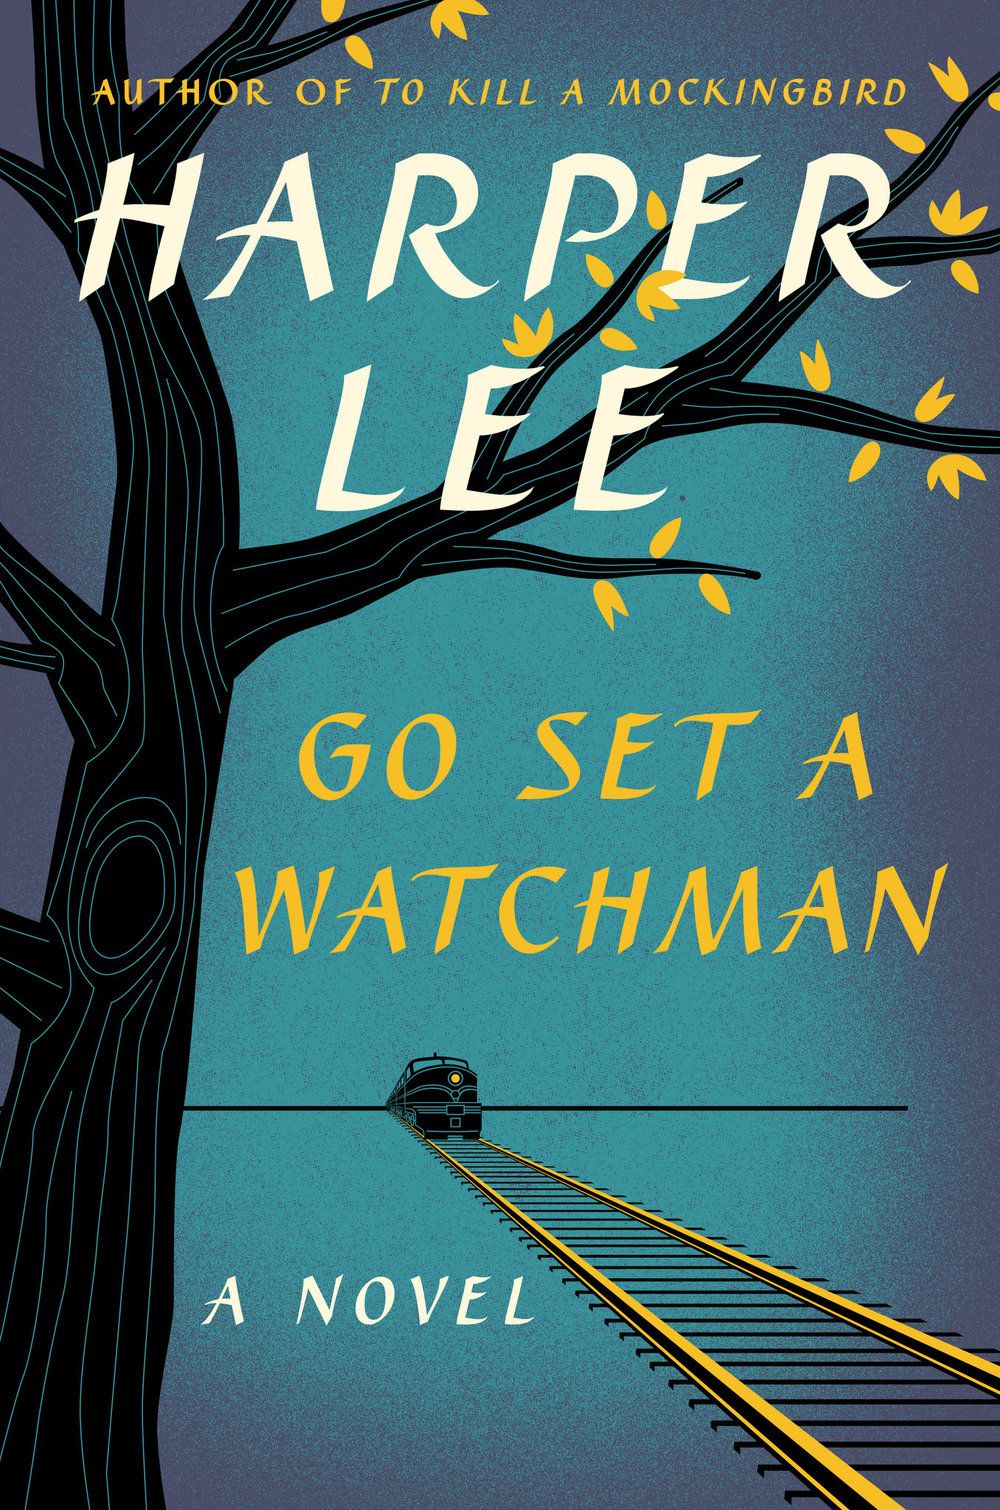 GO SET A WATCHMAN By Harper Lee in OutlooK-12 Magazine